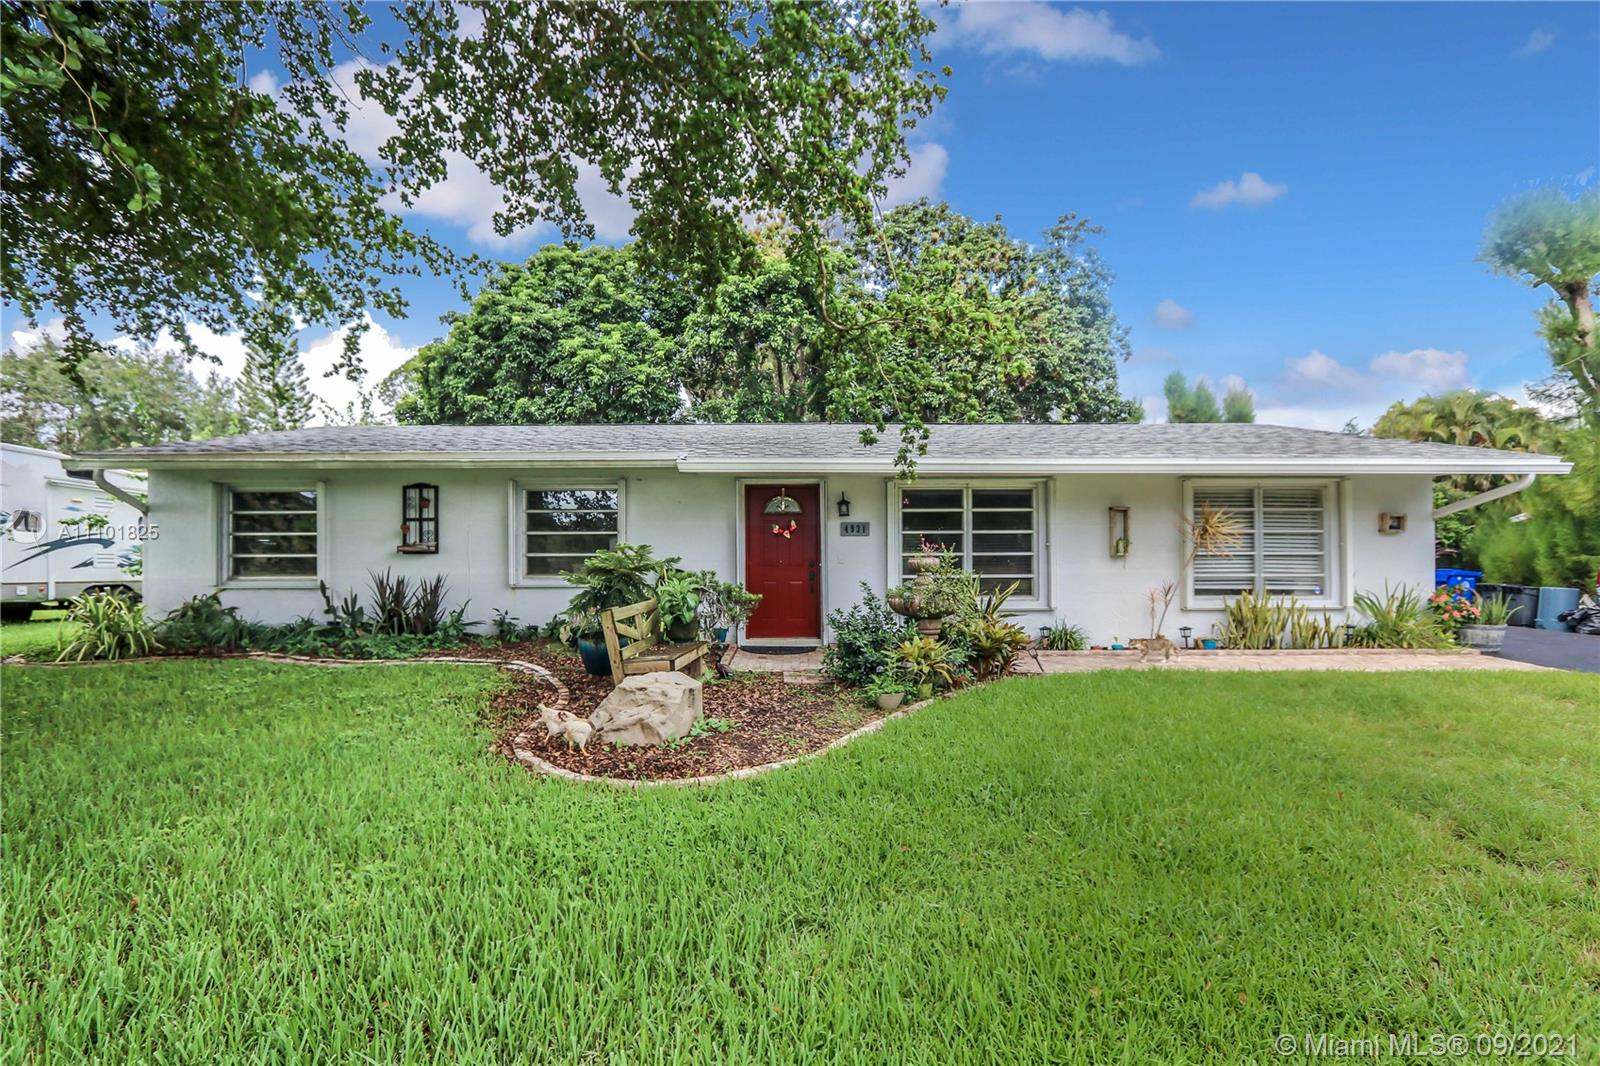 4931 SW 188th Ave, Southwest Ranches, Florida 33332